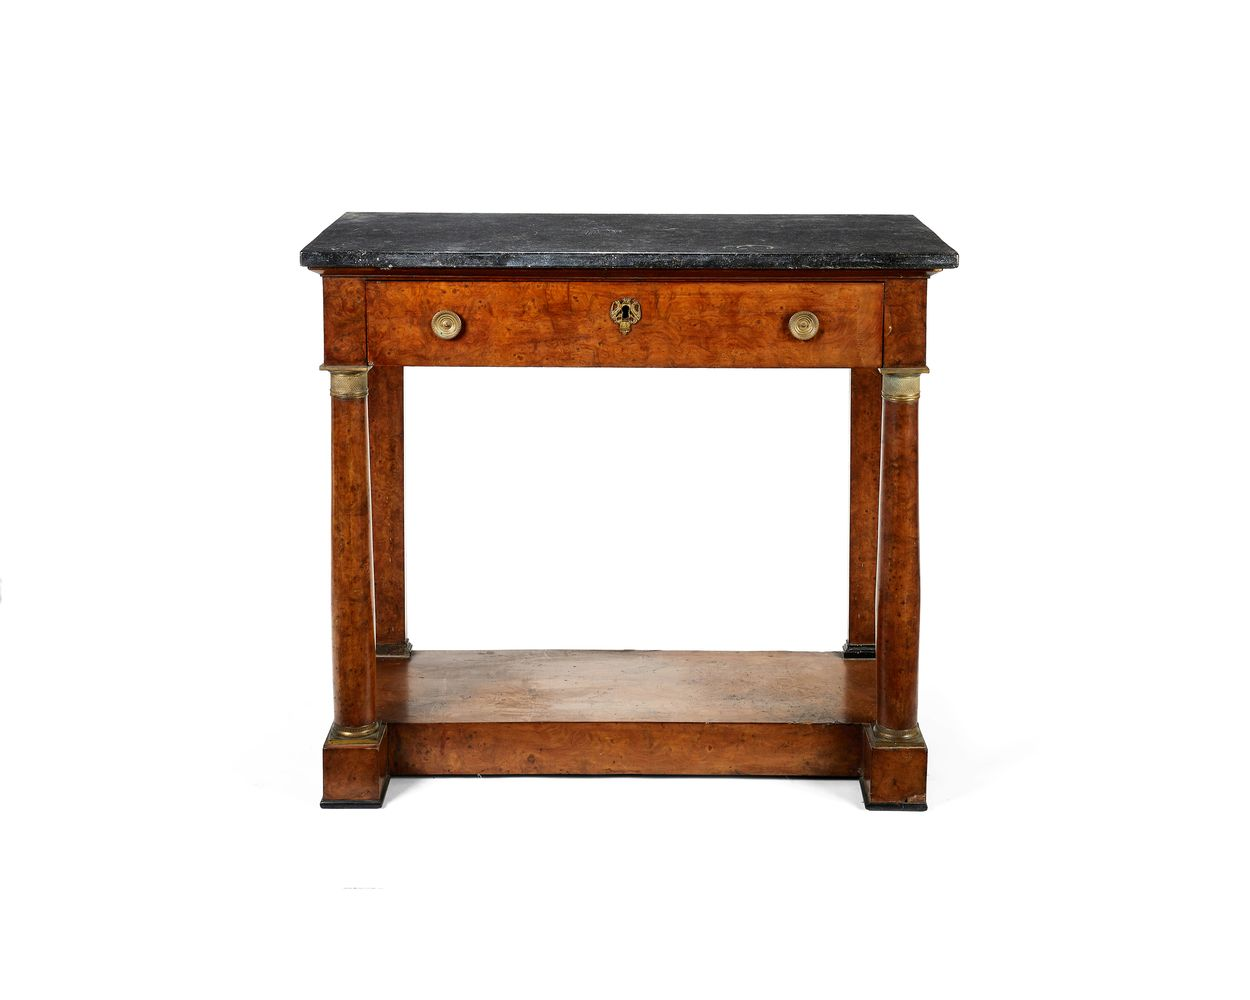 A French Empire burr elm marble topped pier table